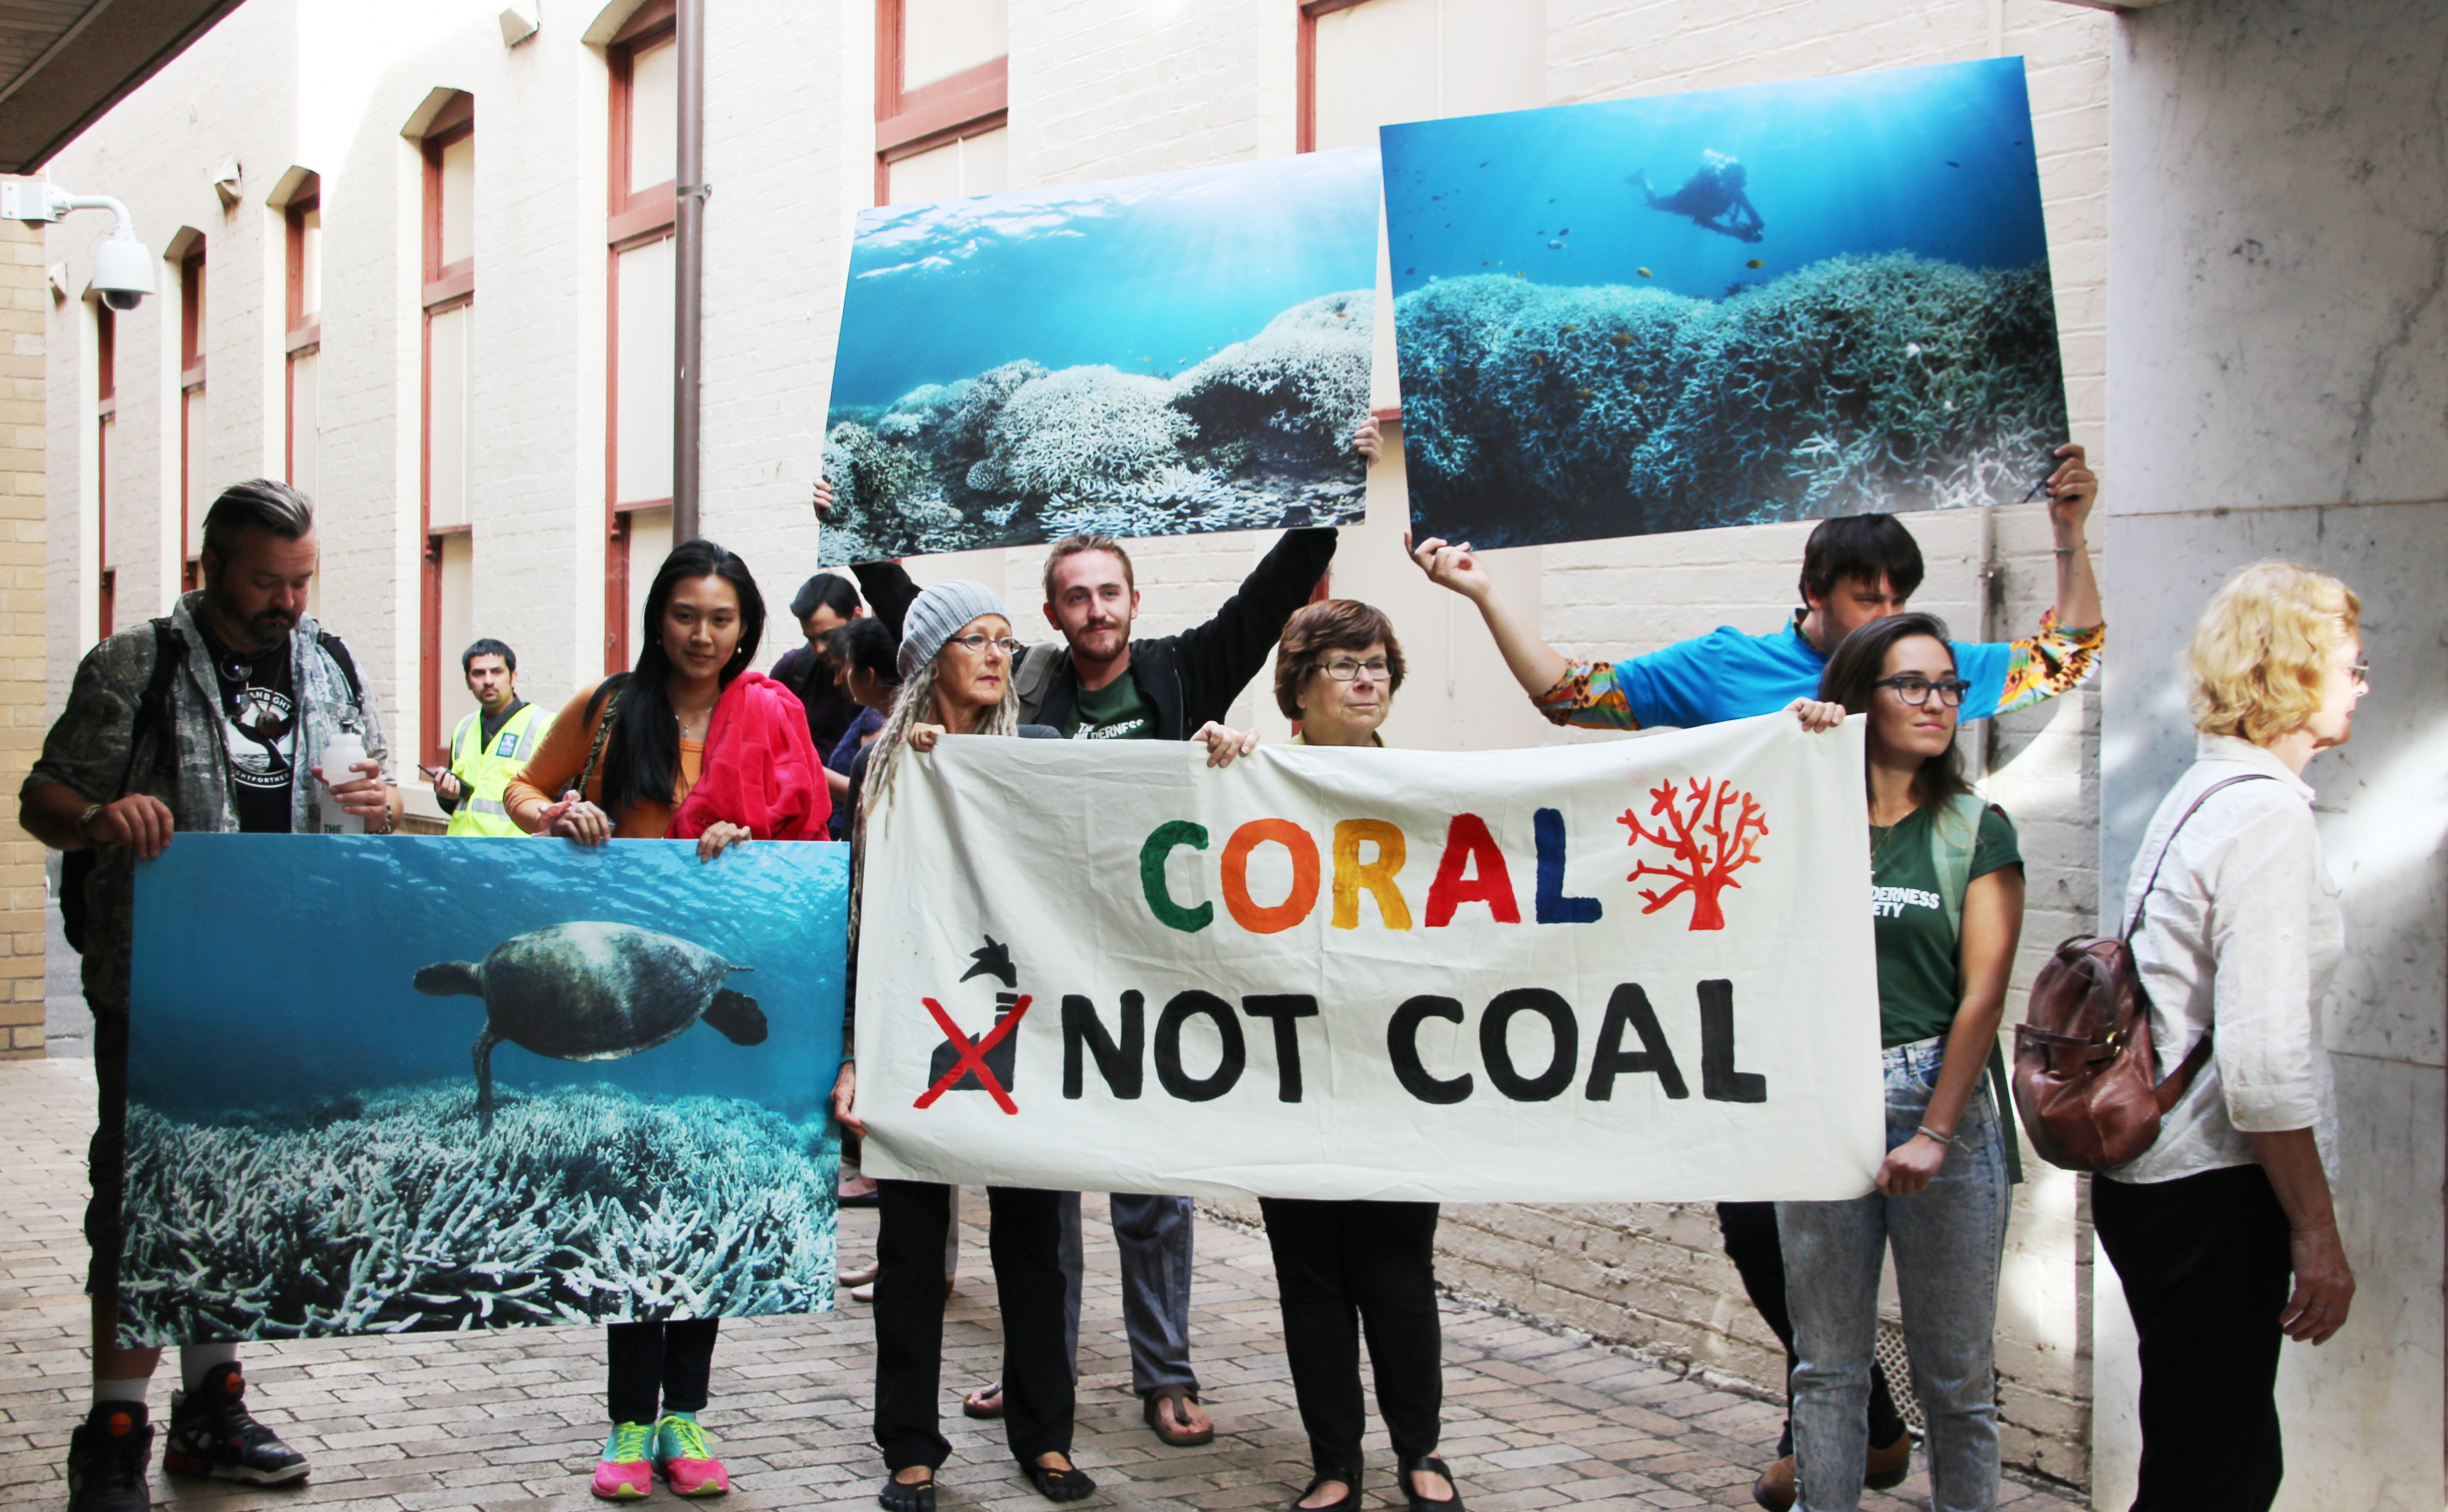 Protesters against expansion plans that would affect the Great Barrier Reef.